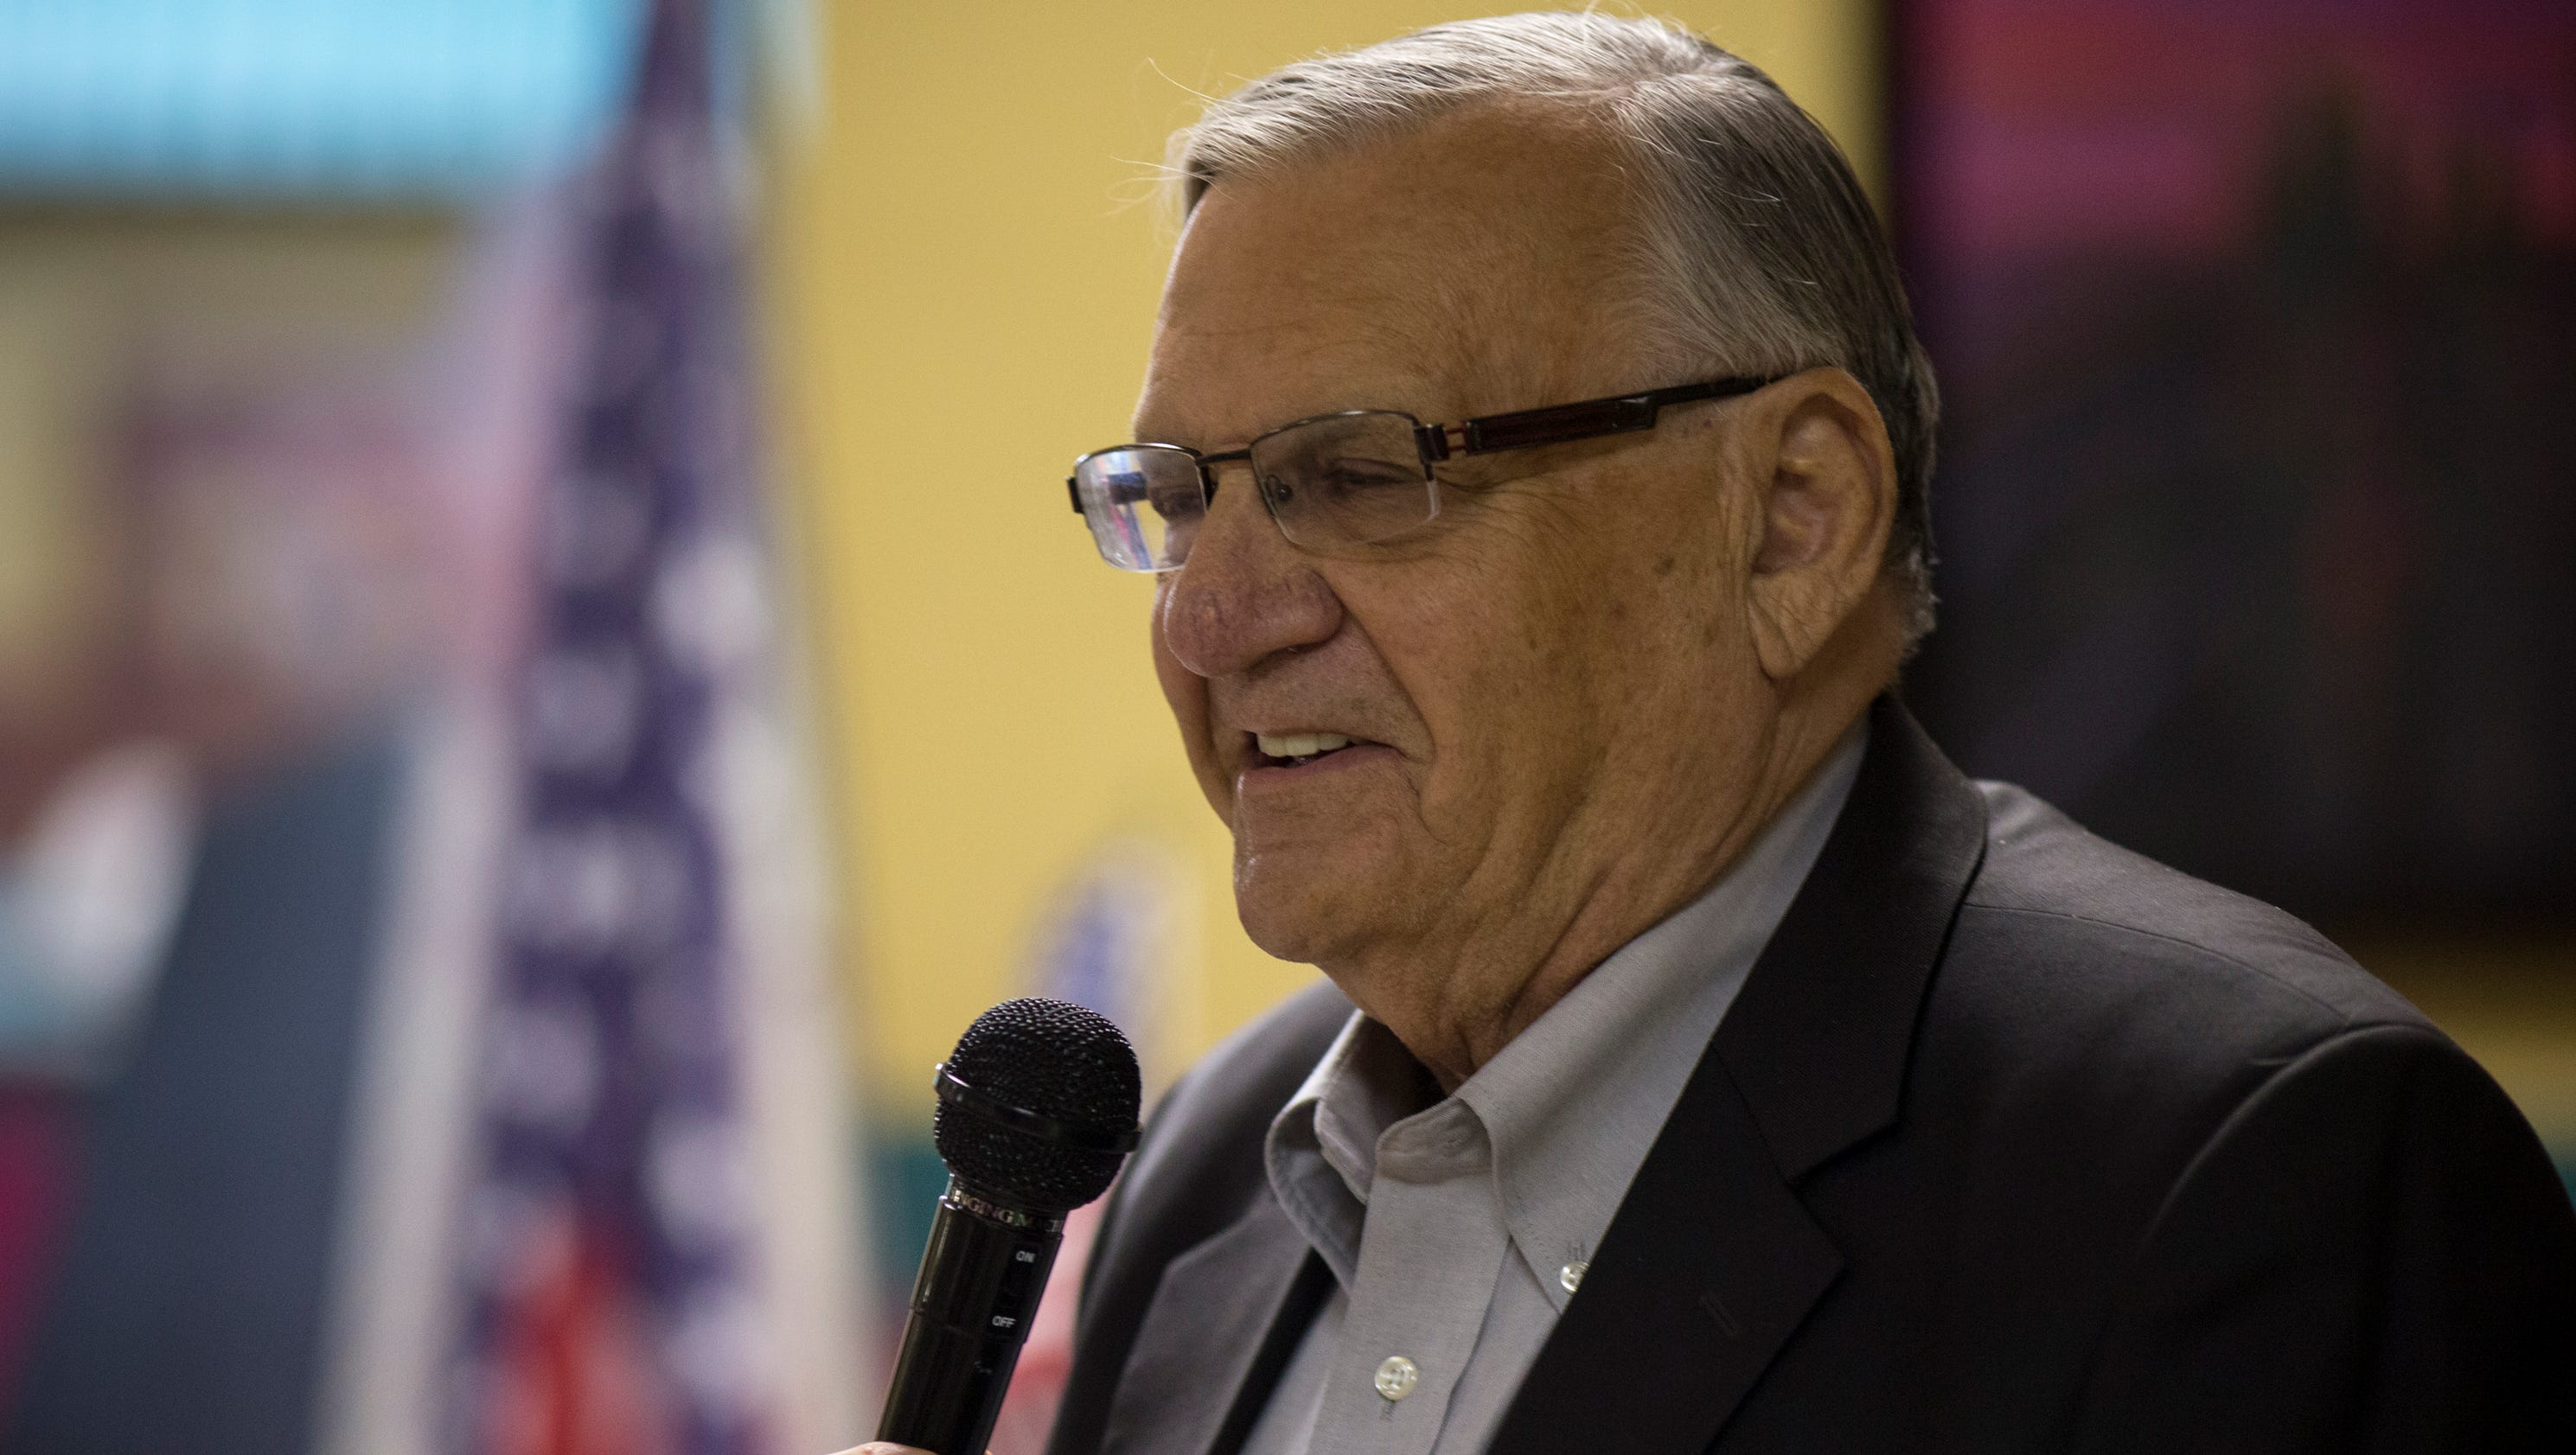 Former Sheriff Joe Arpaio, announcing run for U.S. Senate, says, 'I don't run to lose'